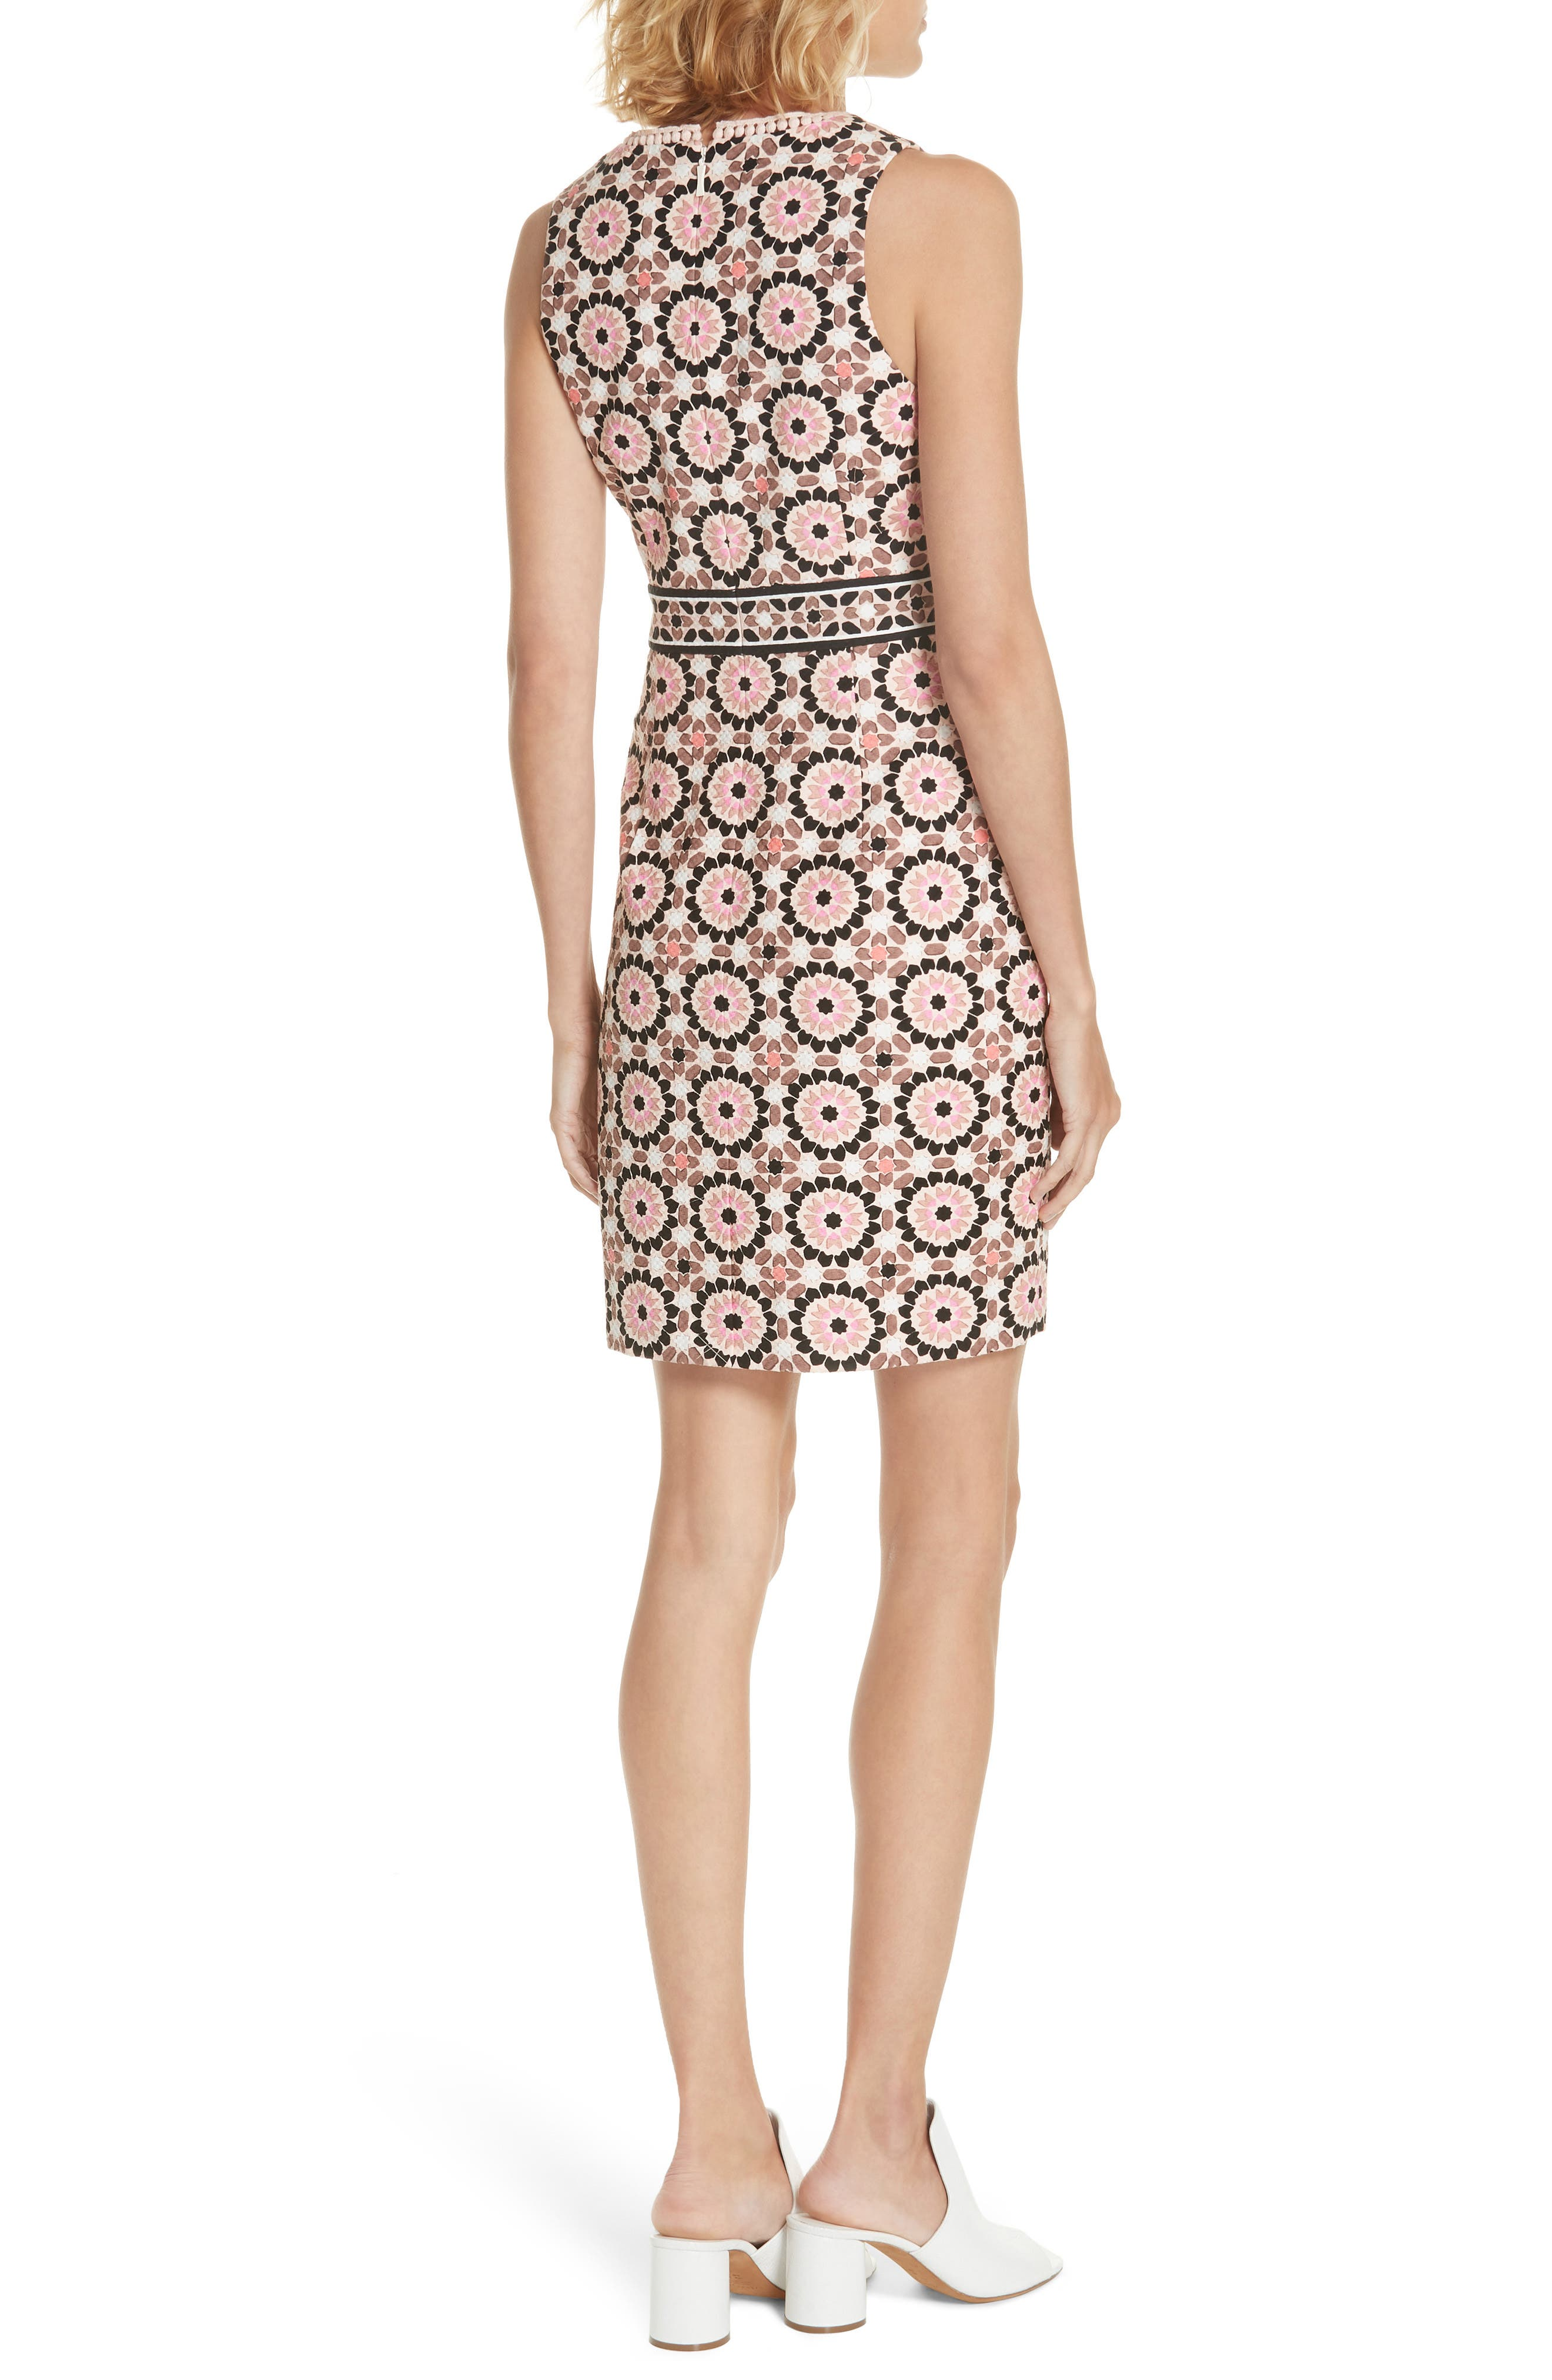 floral mosaic jacquard sheath dress,                             Alternate thumbnail 2, color,